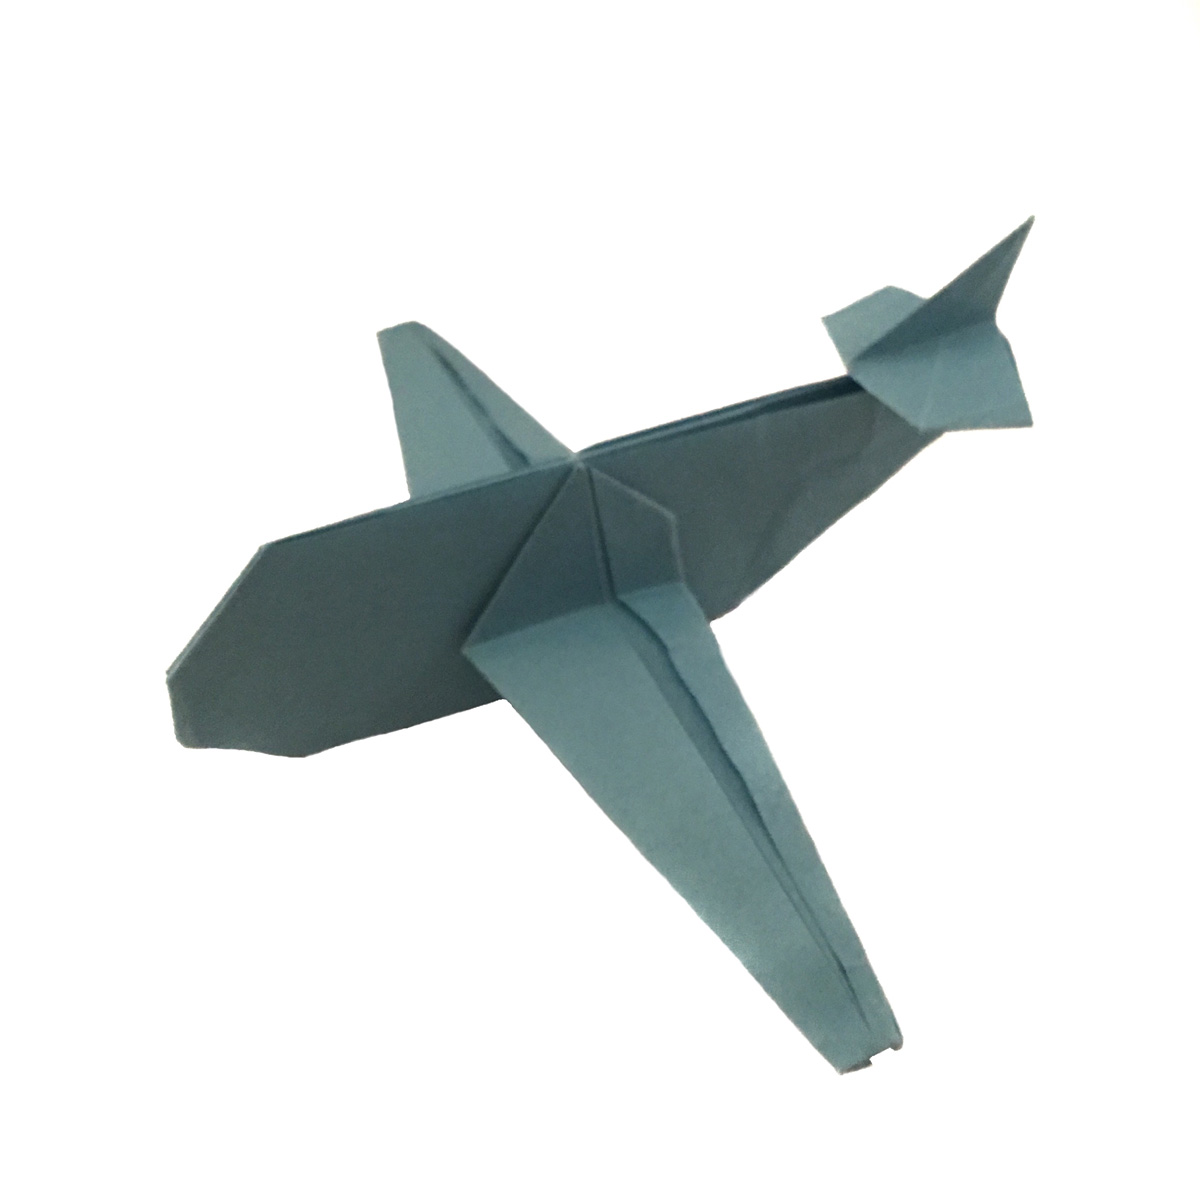 Origami Airplane Designed By Jo Nakashima Up And Away With An